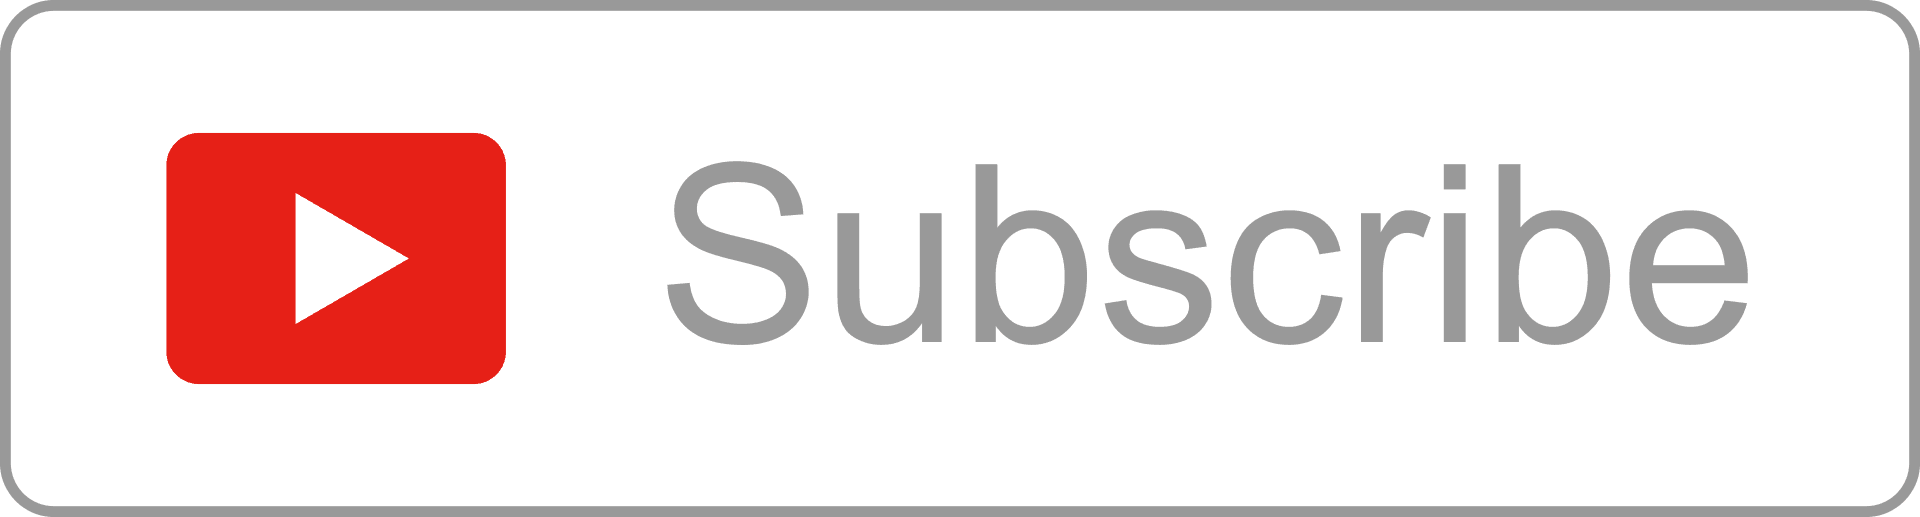 Free-Outline-YouTube-Subscribe-Button-by-AlfredoCreates ...